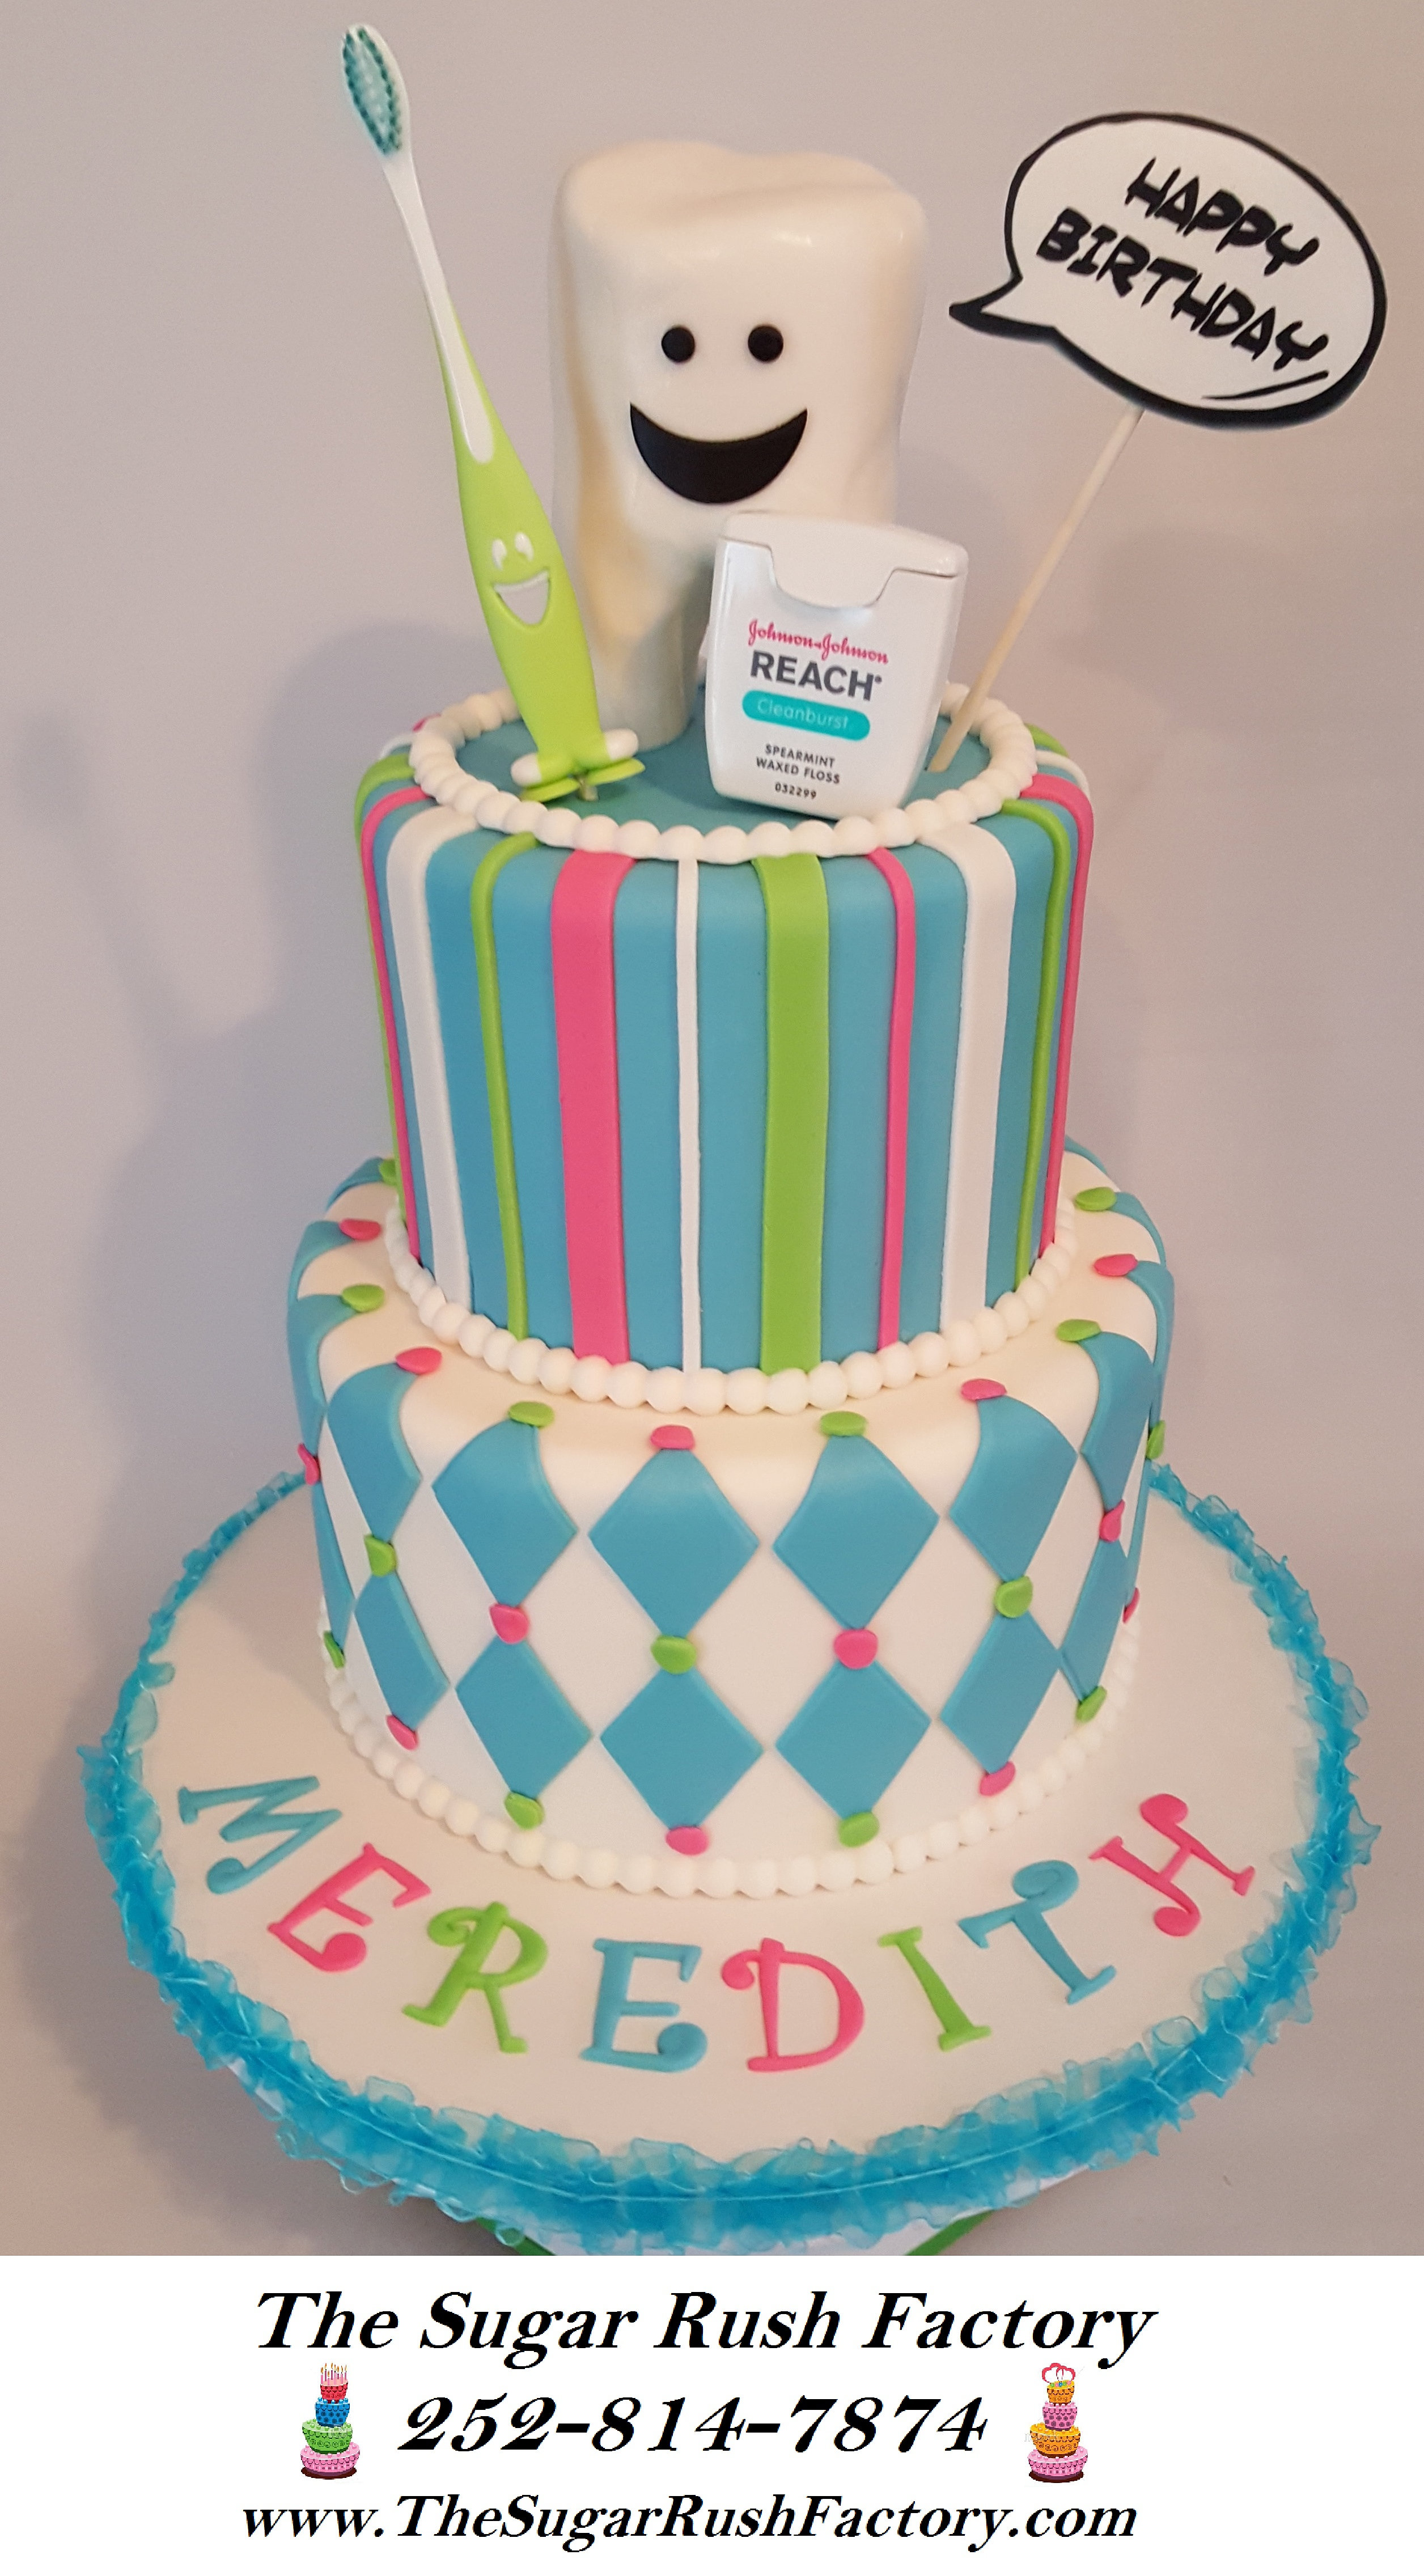 wholesale cake decorating supplies dallas tx - Wholesale Cake Decorating Supplies